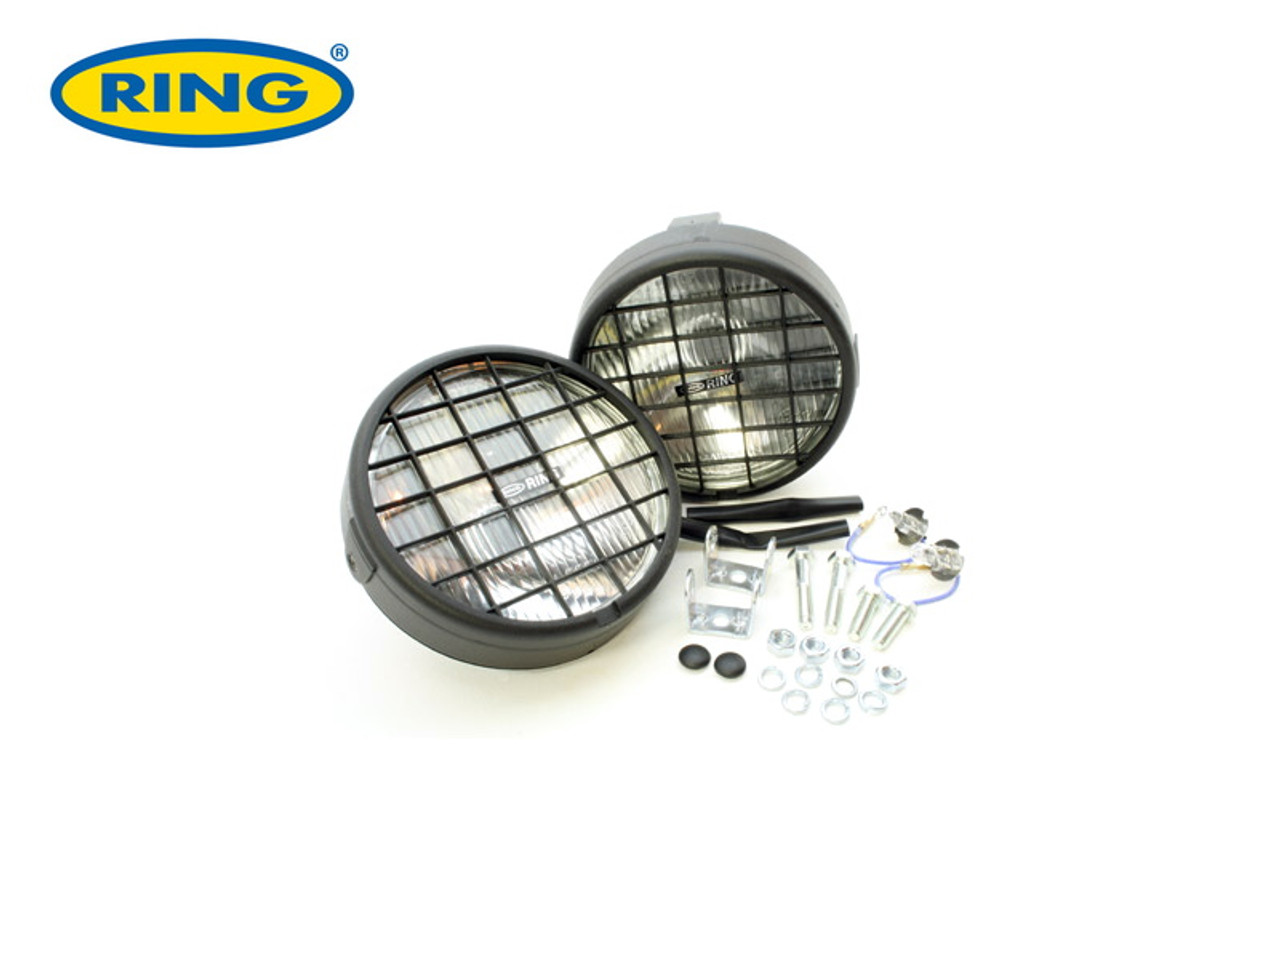 RING 5.5 ROUND ROAD RUNNER DRIVING LAMPS